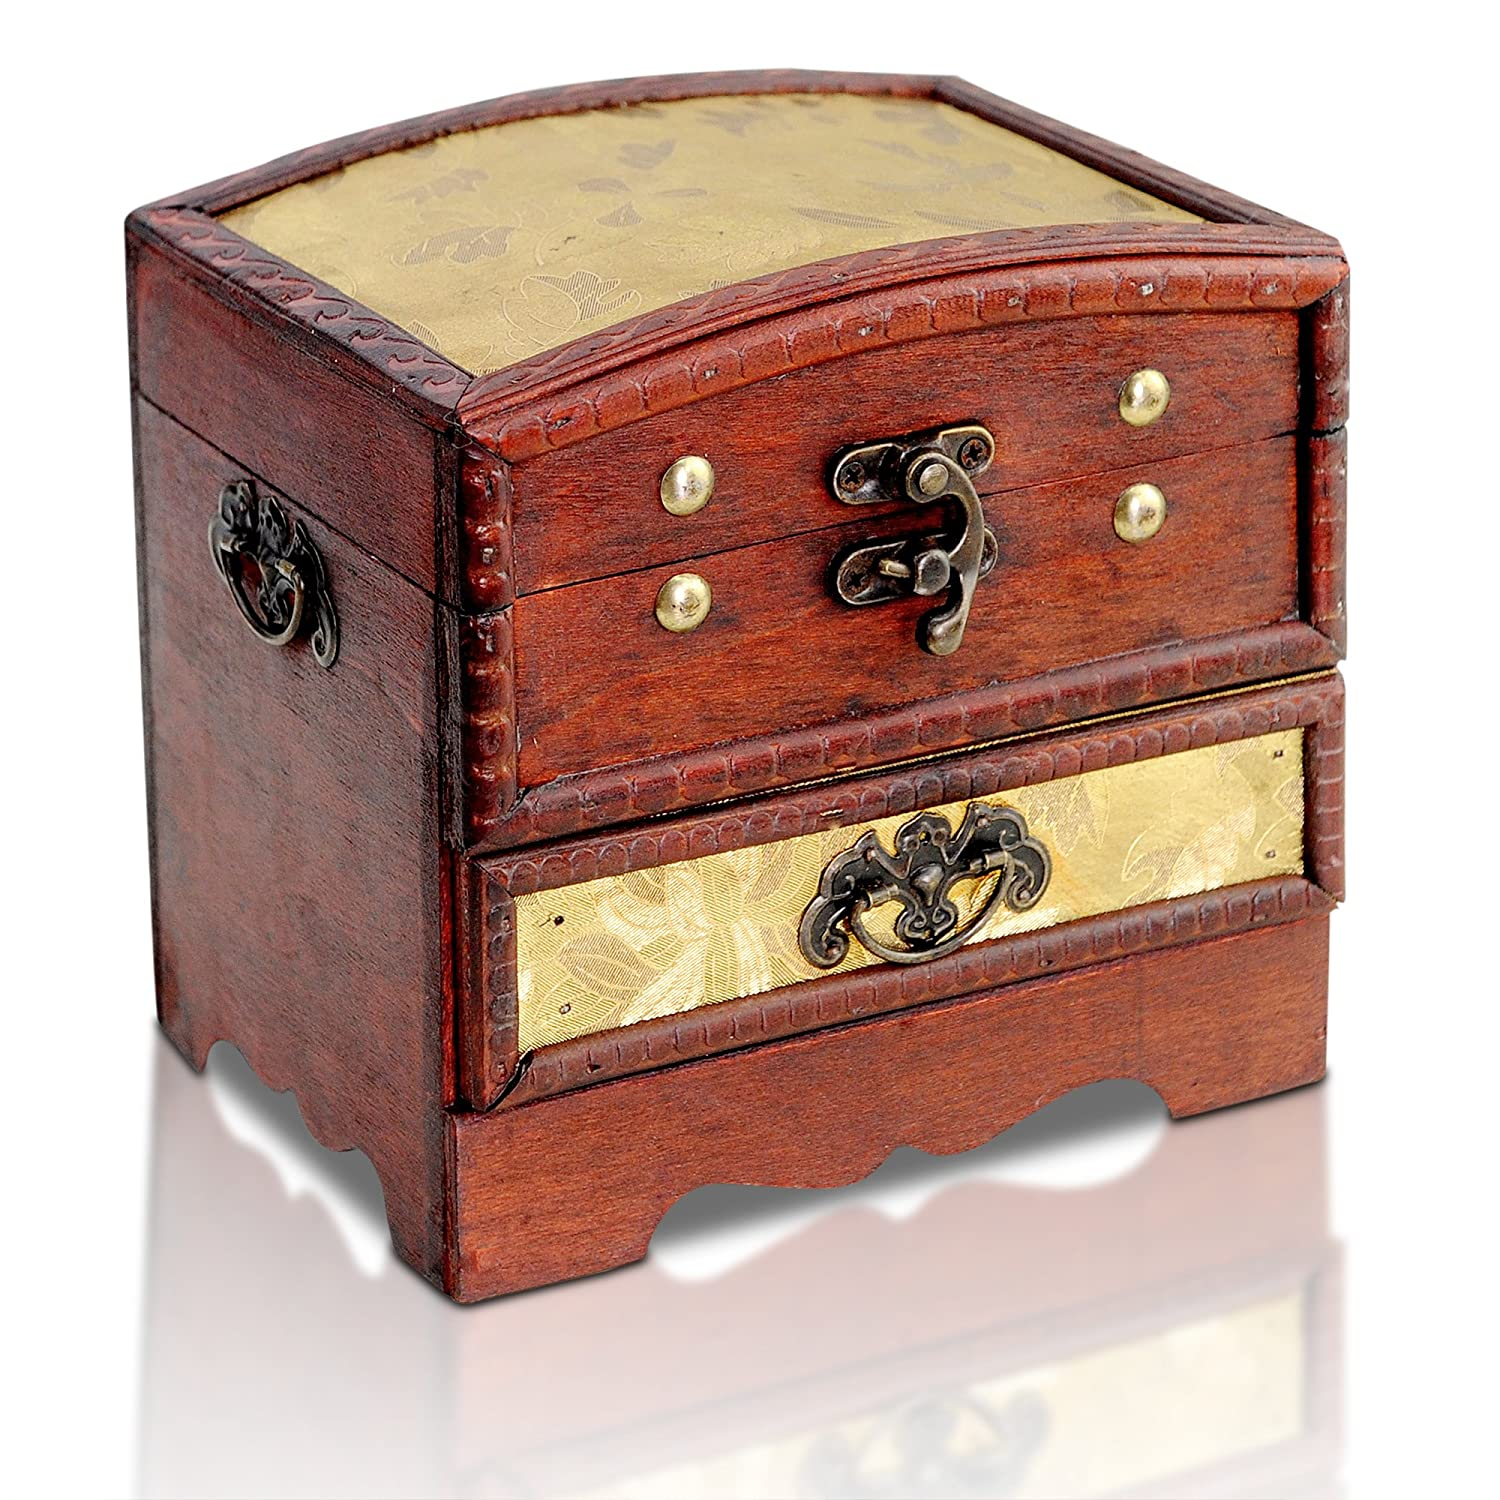 Brynnberg - Pirate Treasure Chest Storage Box - Durable Wood & Metal Construction - Unique, Handmade Vintage Design With A Front Lock - Striking Decorative Element - The Best Gift (Columbus Stoff)